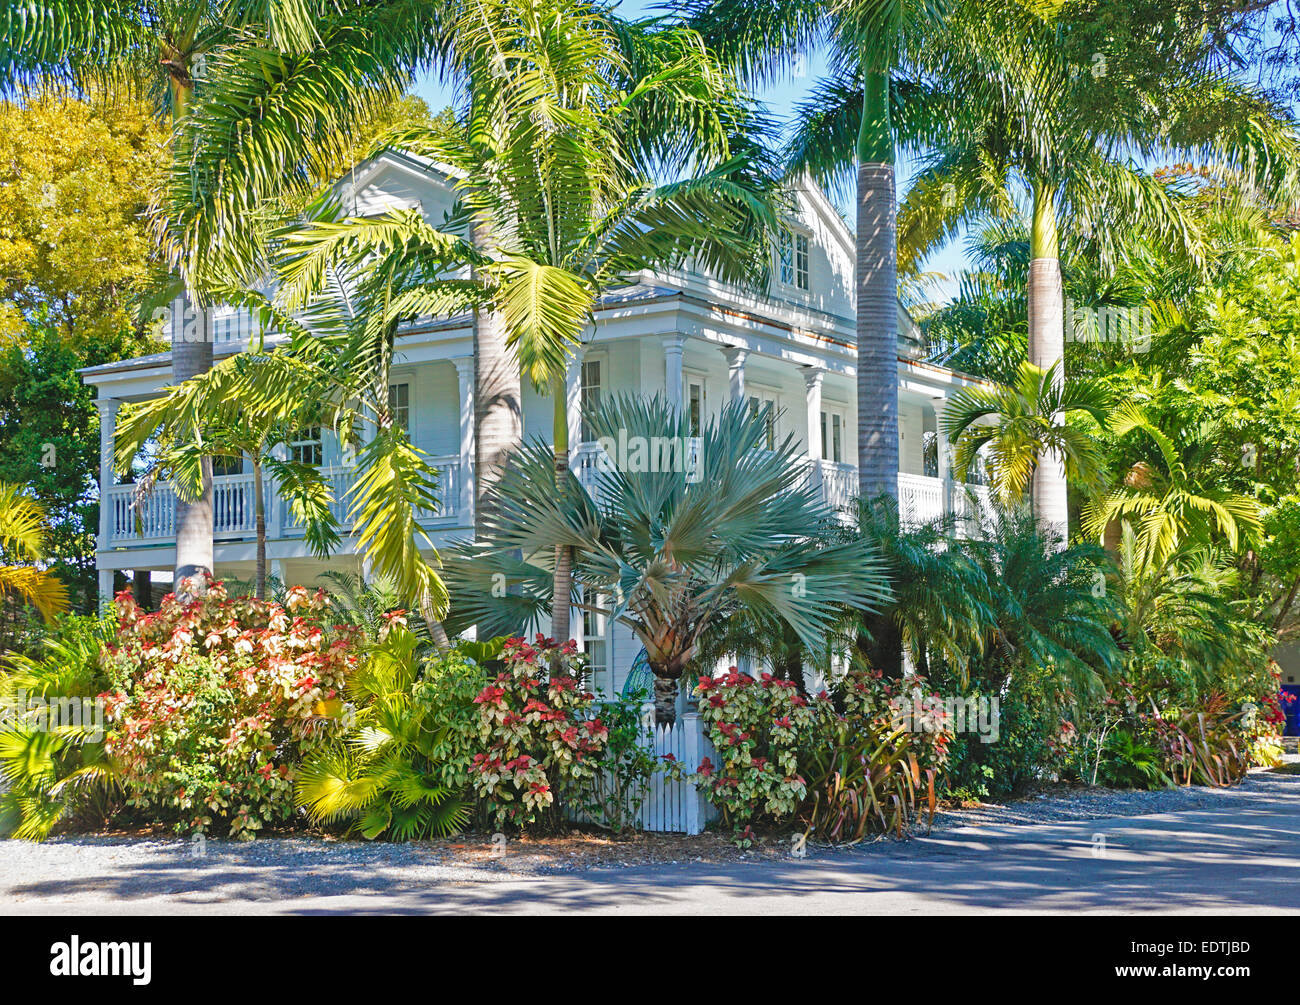 Large house in Key West style architecture. - Stock Image